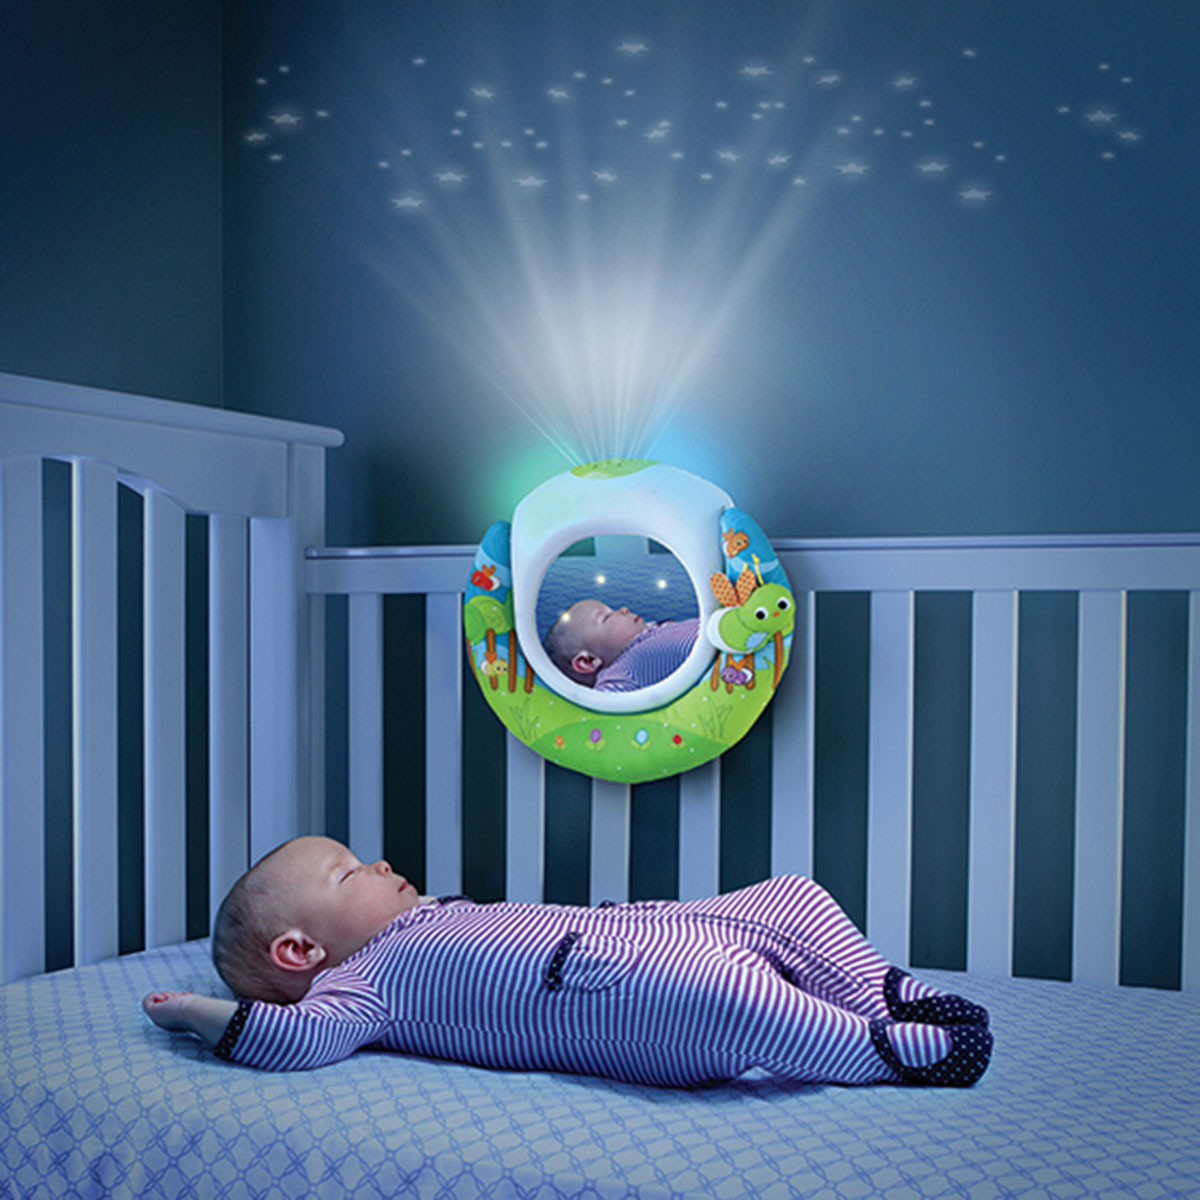 Nursery night light projector thenurseries make your kids hy with baby ceiling light projector warisan mozeypictures Choice Image